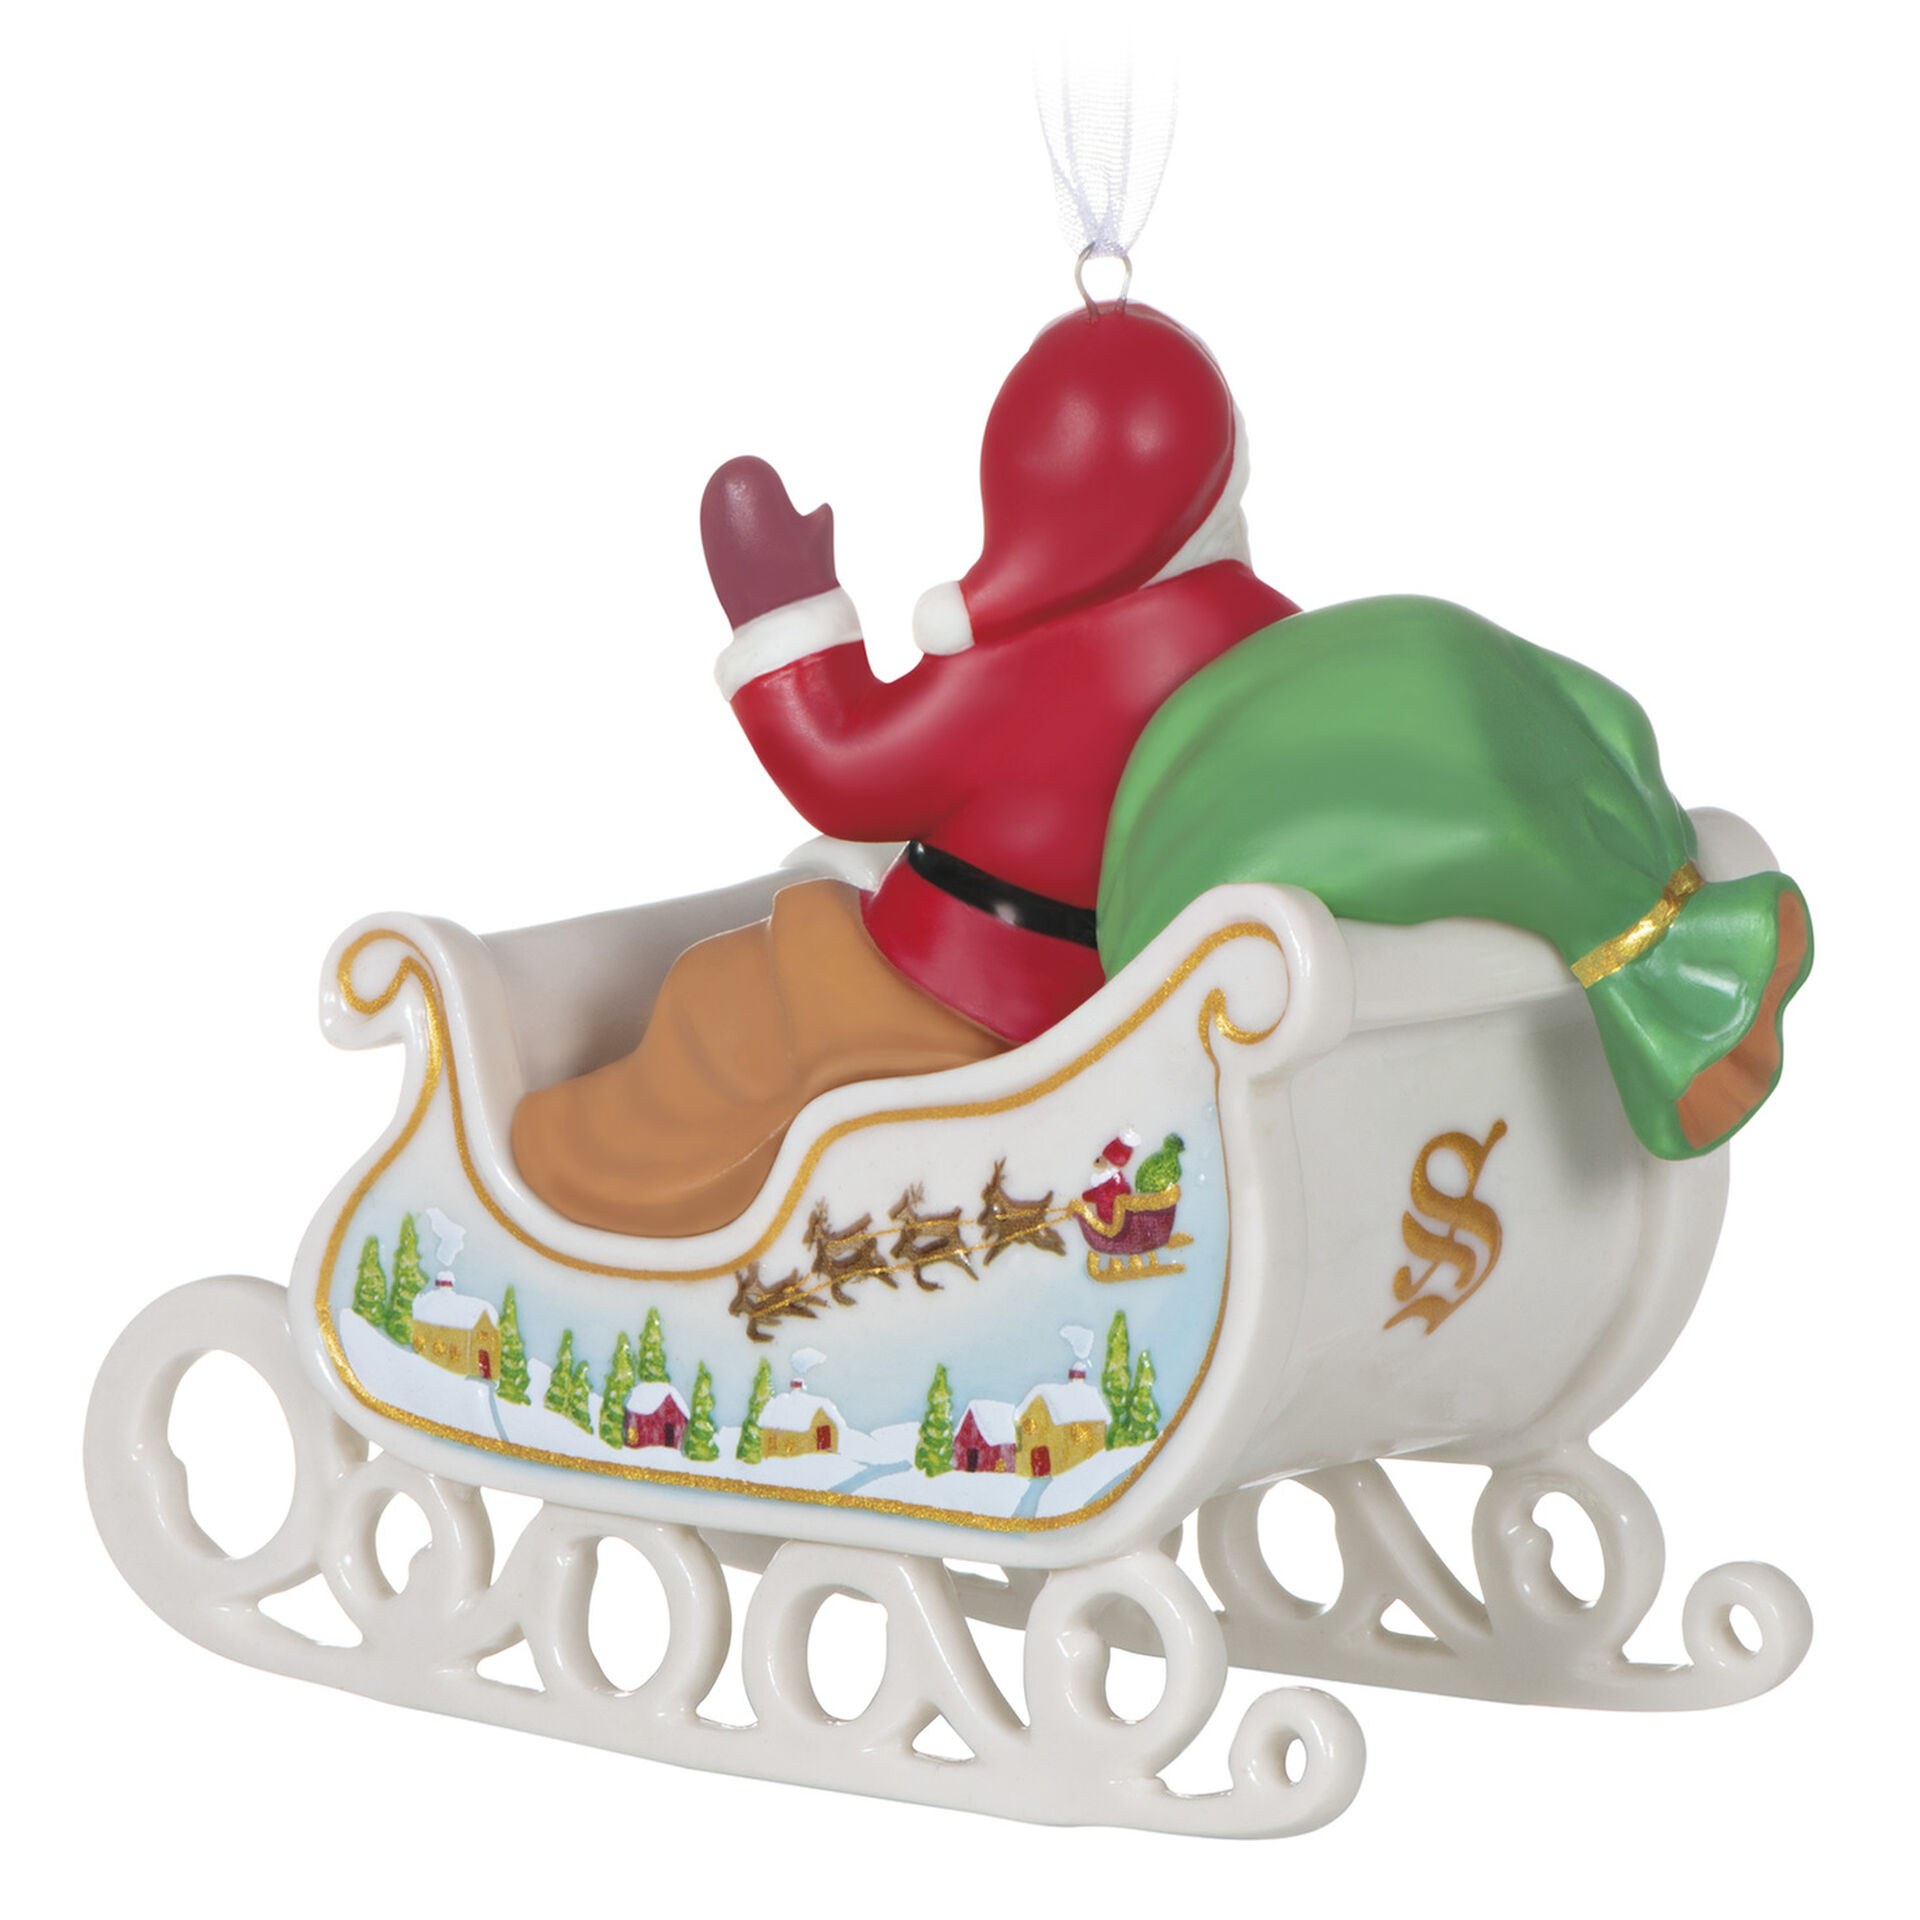 red truck Christmas ornament Snowman ornament nativity ornament stocking stuffers Santa\u2019s sleigh ornament holiday gifts for coworkers